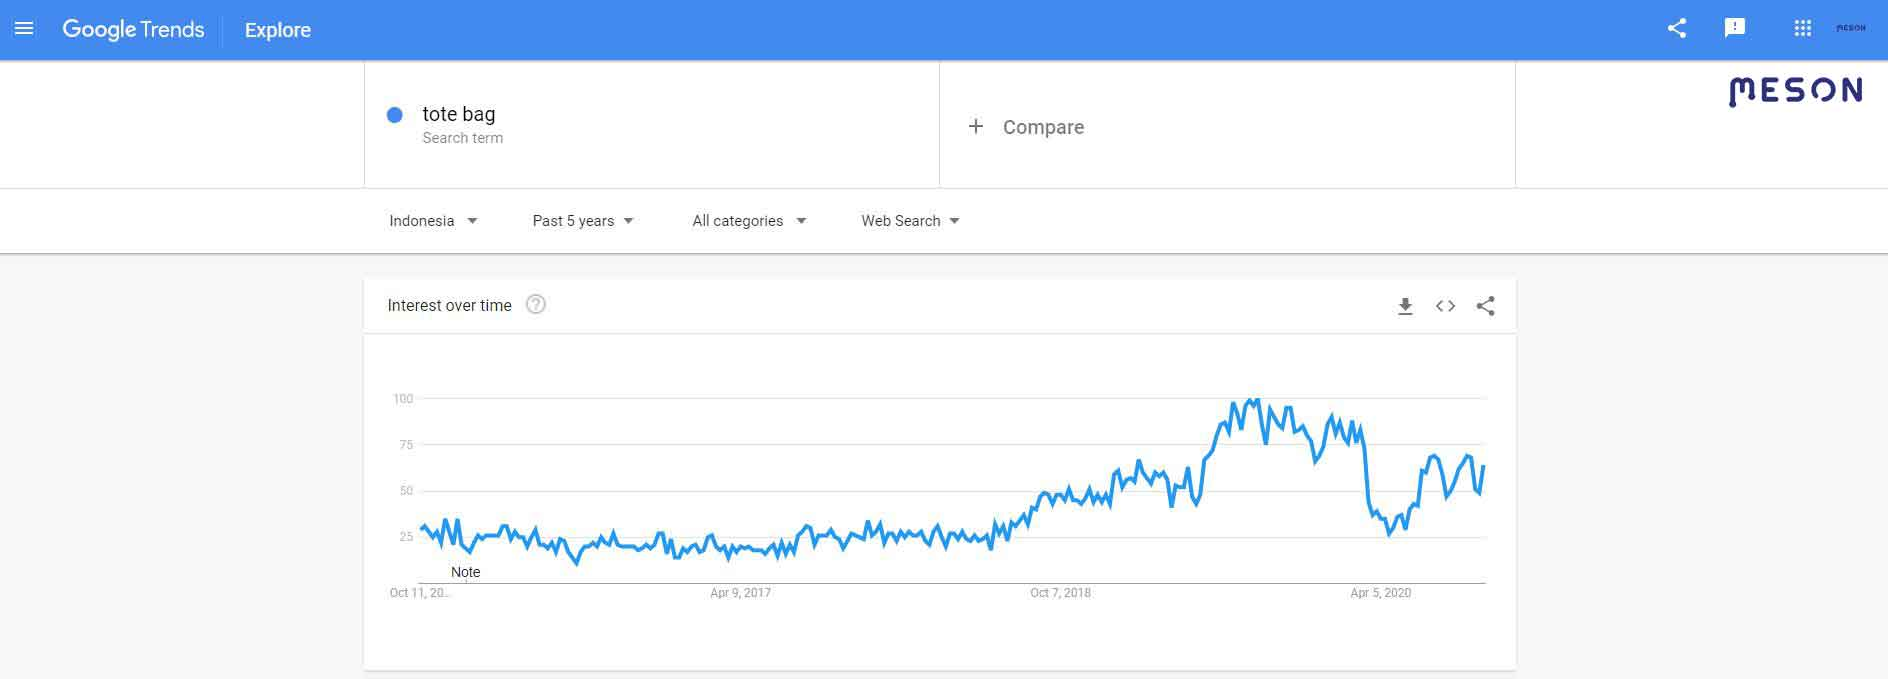 keyword totebag di google trend indonesia